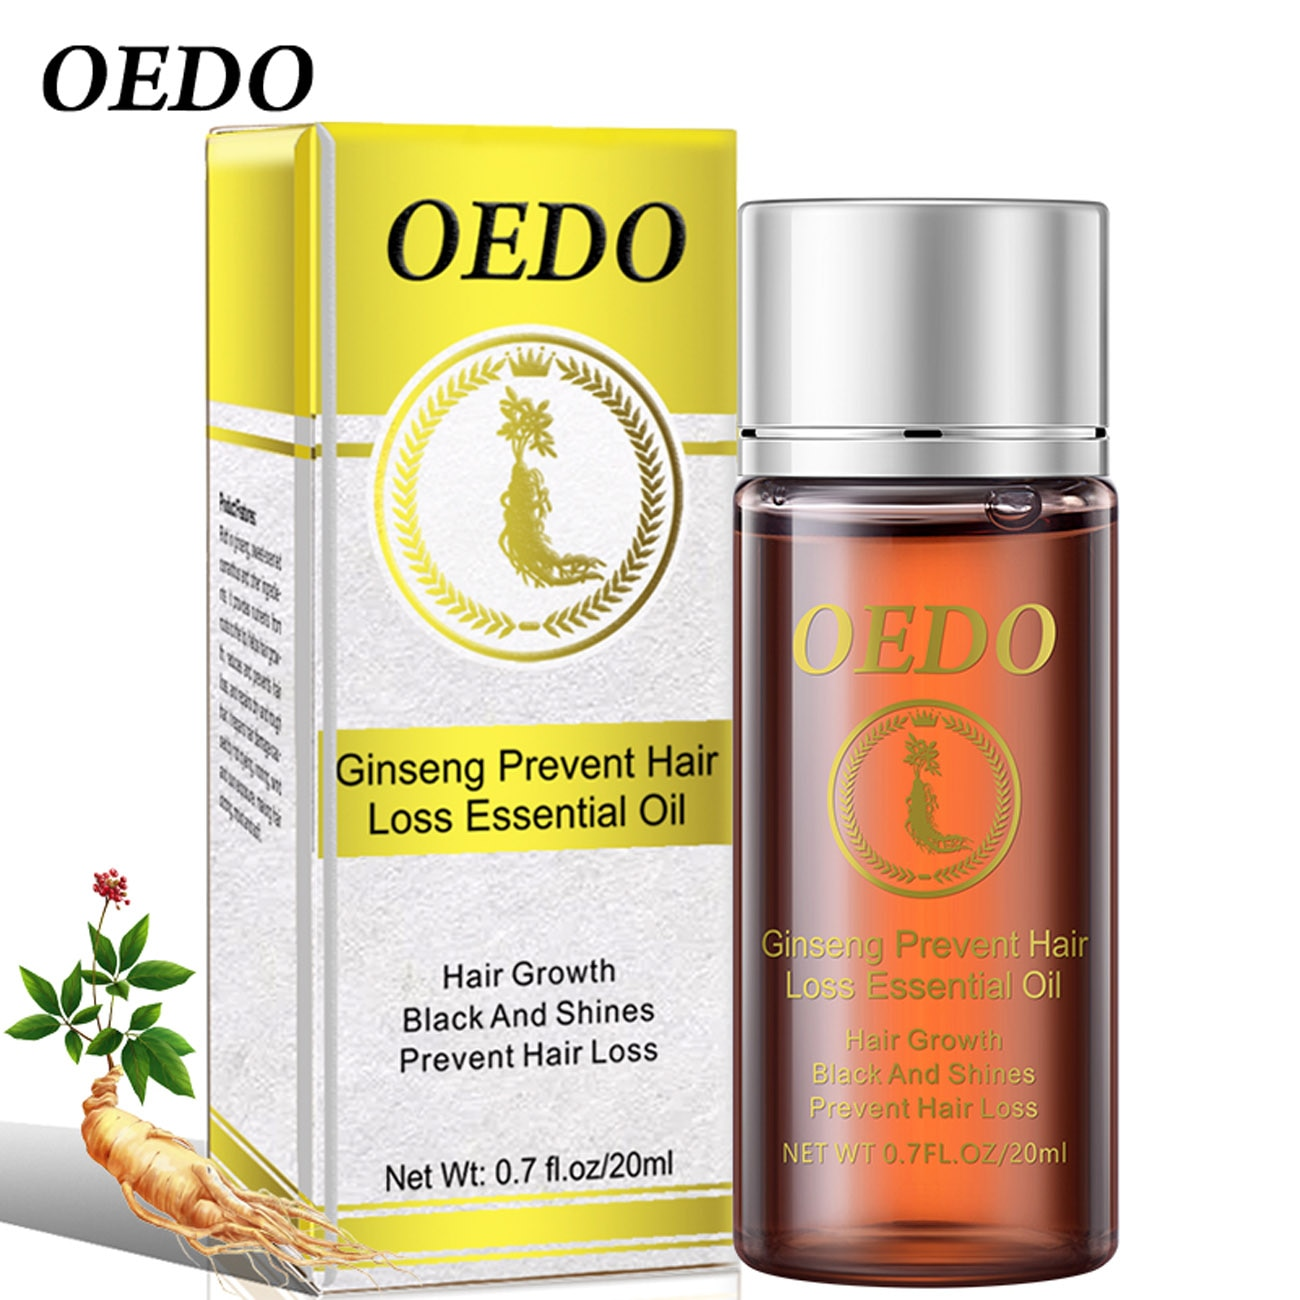 OEDO Ginseng Hair Growth Essence Preventing Loss Essential Oil Repair Damage Nourish Roots Accelerate